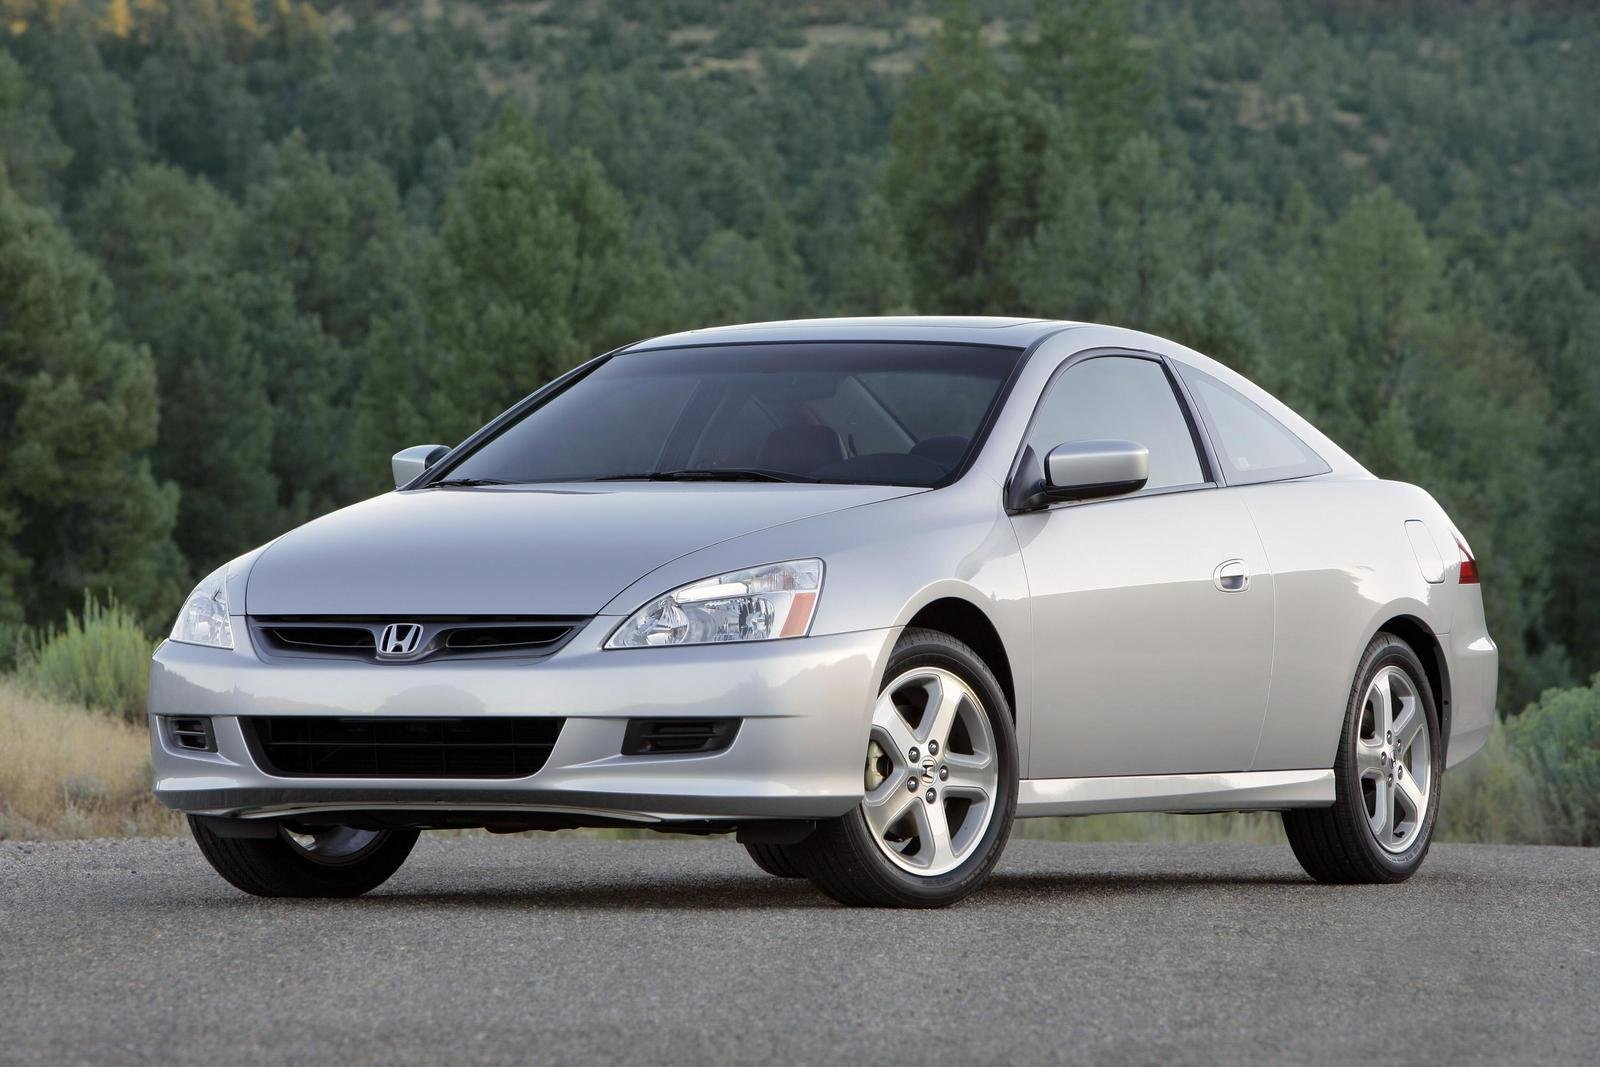 2006 Honda Accord Coupe - Picture 93854 | car review @ Top ...